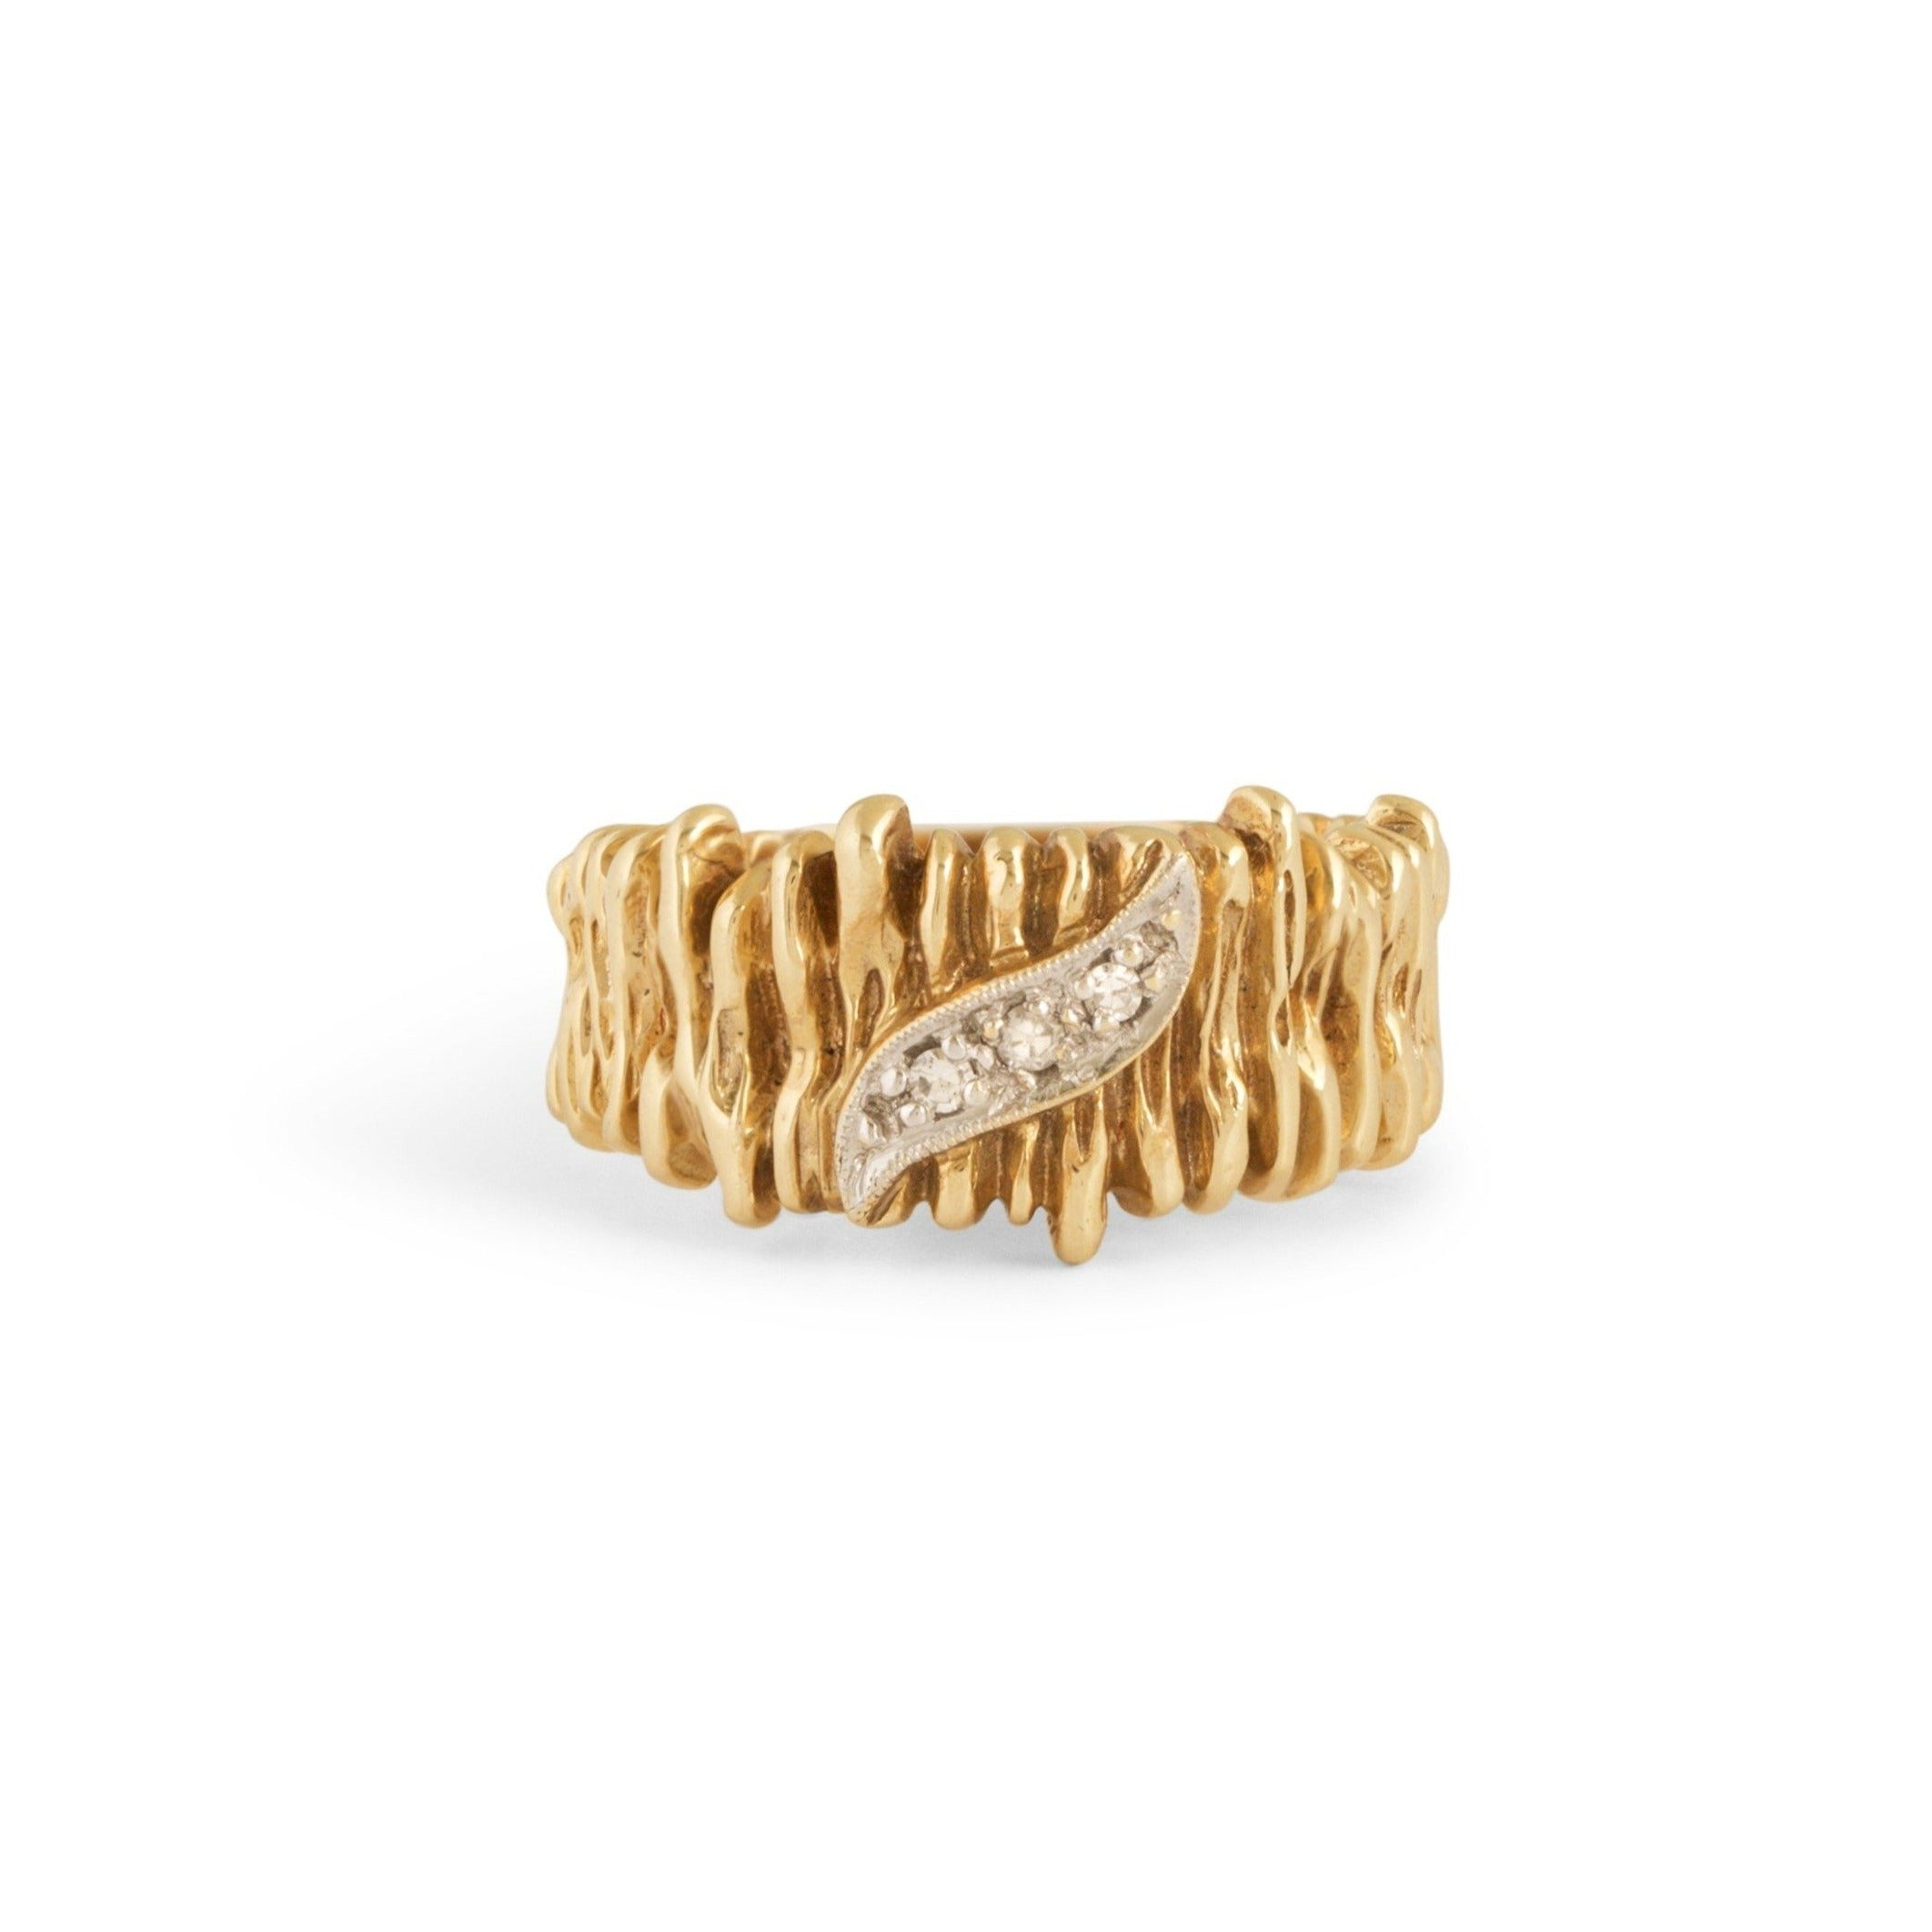 Textured 14k Gold and Diamond Ring